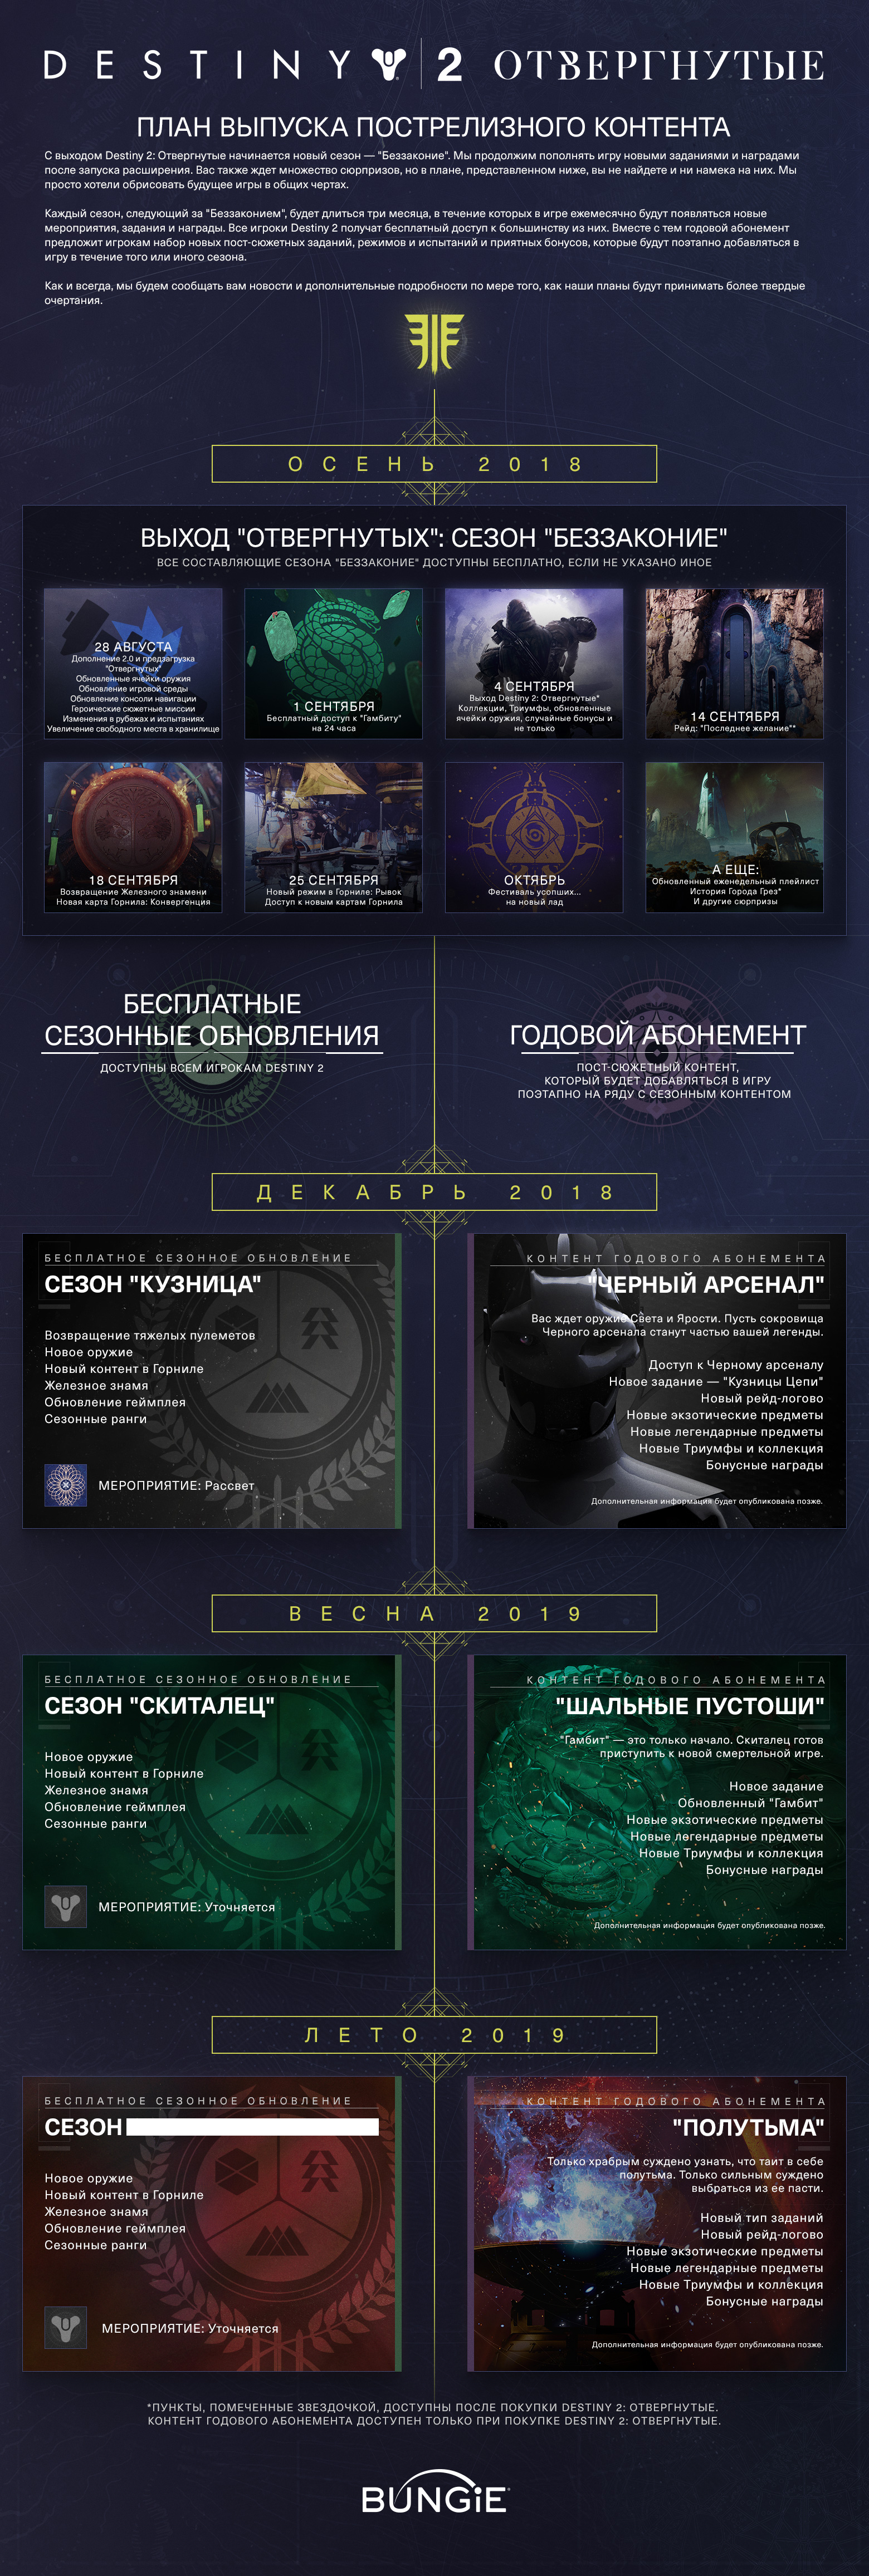 RU_forsaken_post_launch_infographic.jpg?